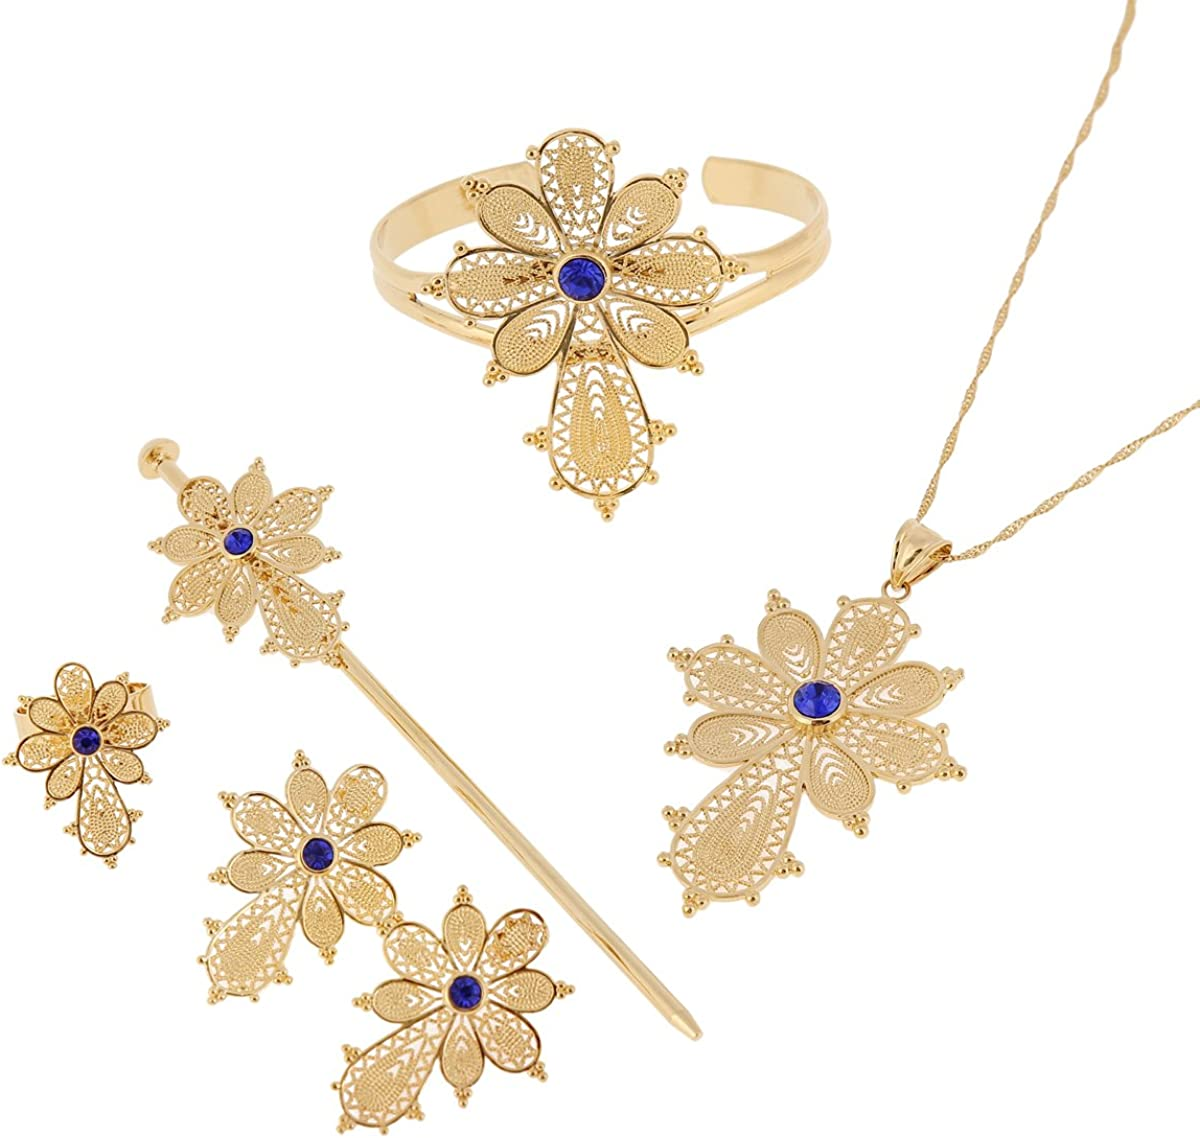 Newest Ethiopian Cross Necklace Pendant Bangle Earring Ring Hairpin Set 24k Gold Plated Habesha Jewelry Sets